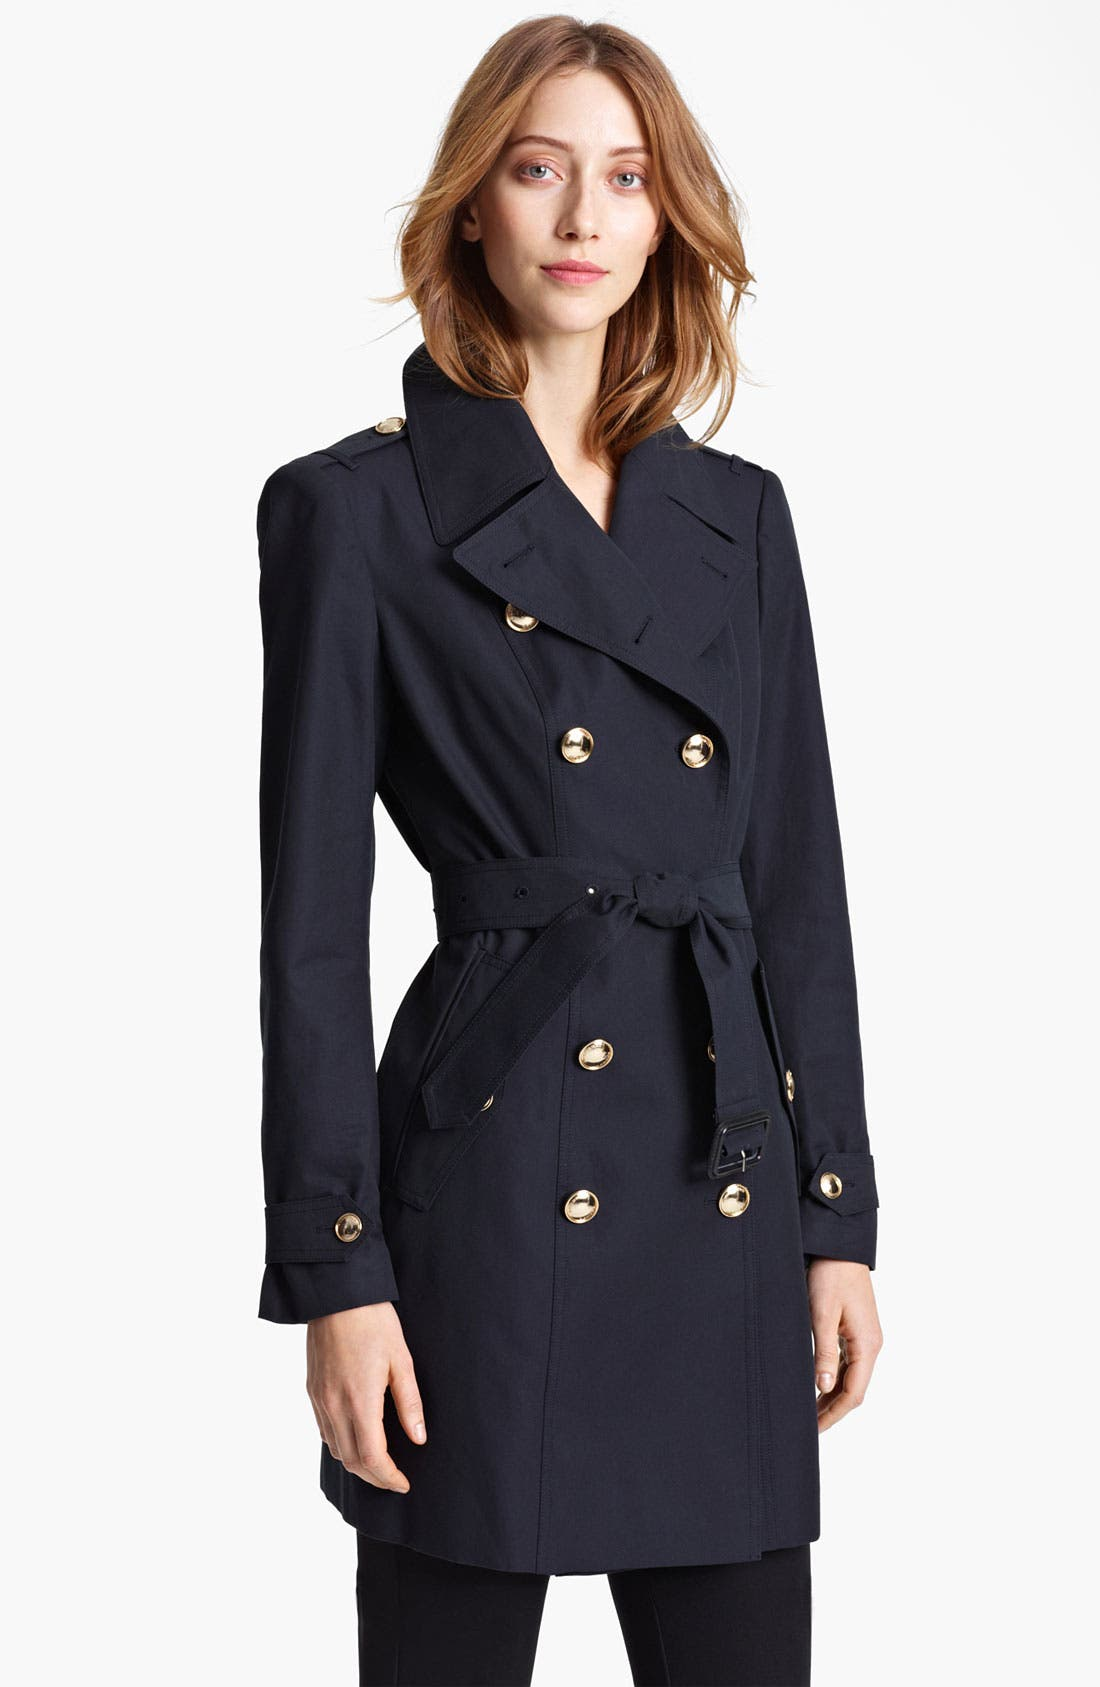 Gold Button Trench Coat,                             Main thumbnail 1, color,                             410